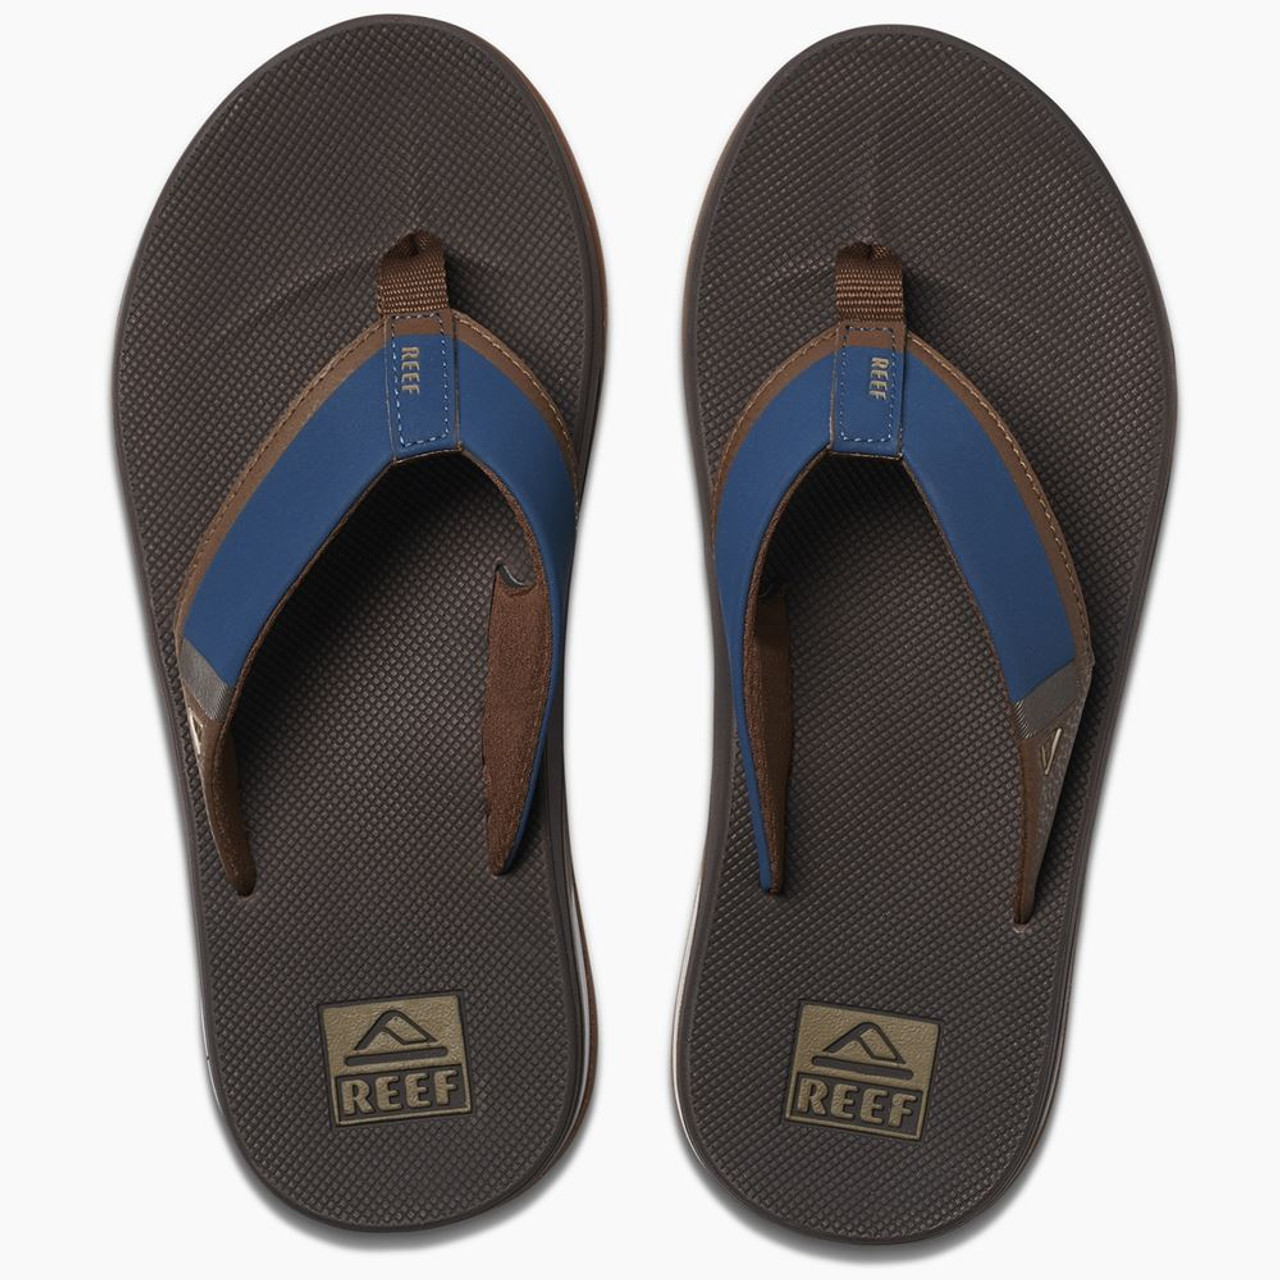 3dc9bbdb3c5da Reef Mens Sandals With Bottle Opener ~ Fanning Low navy/brown ...